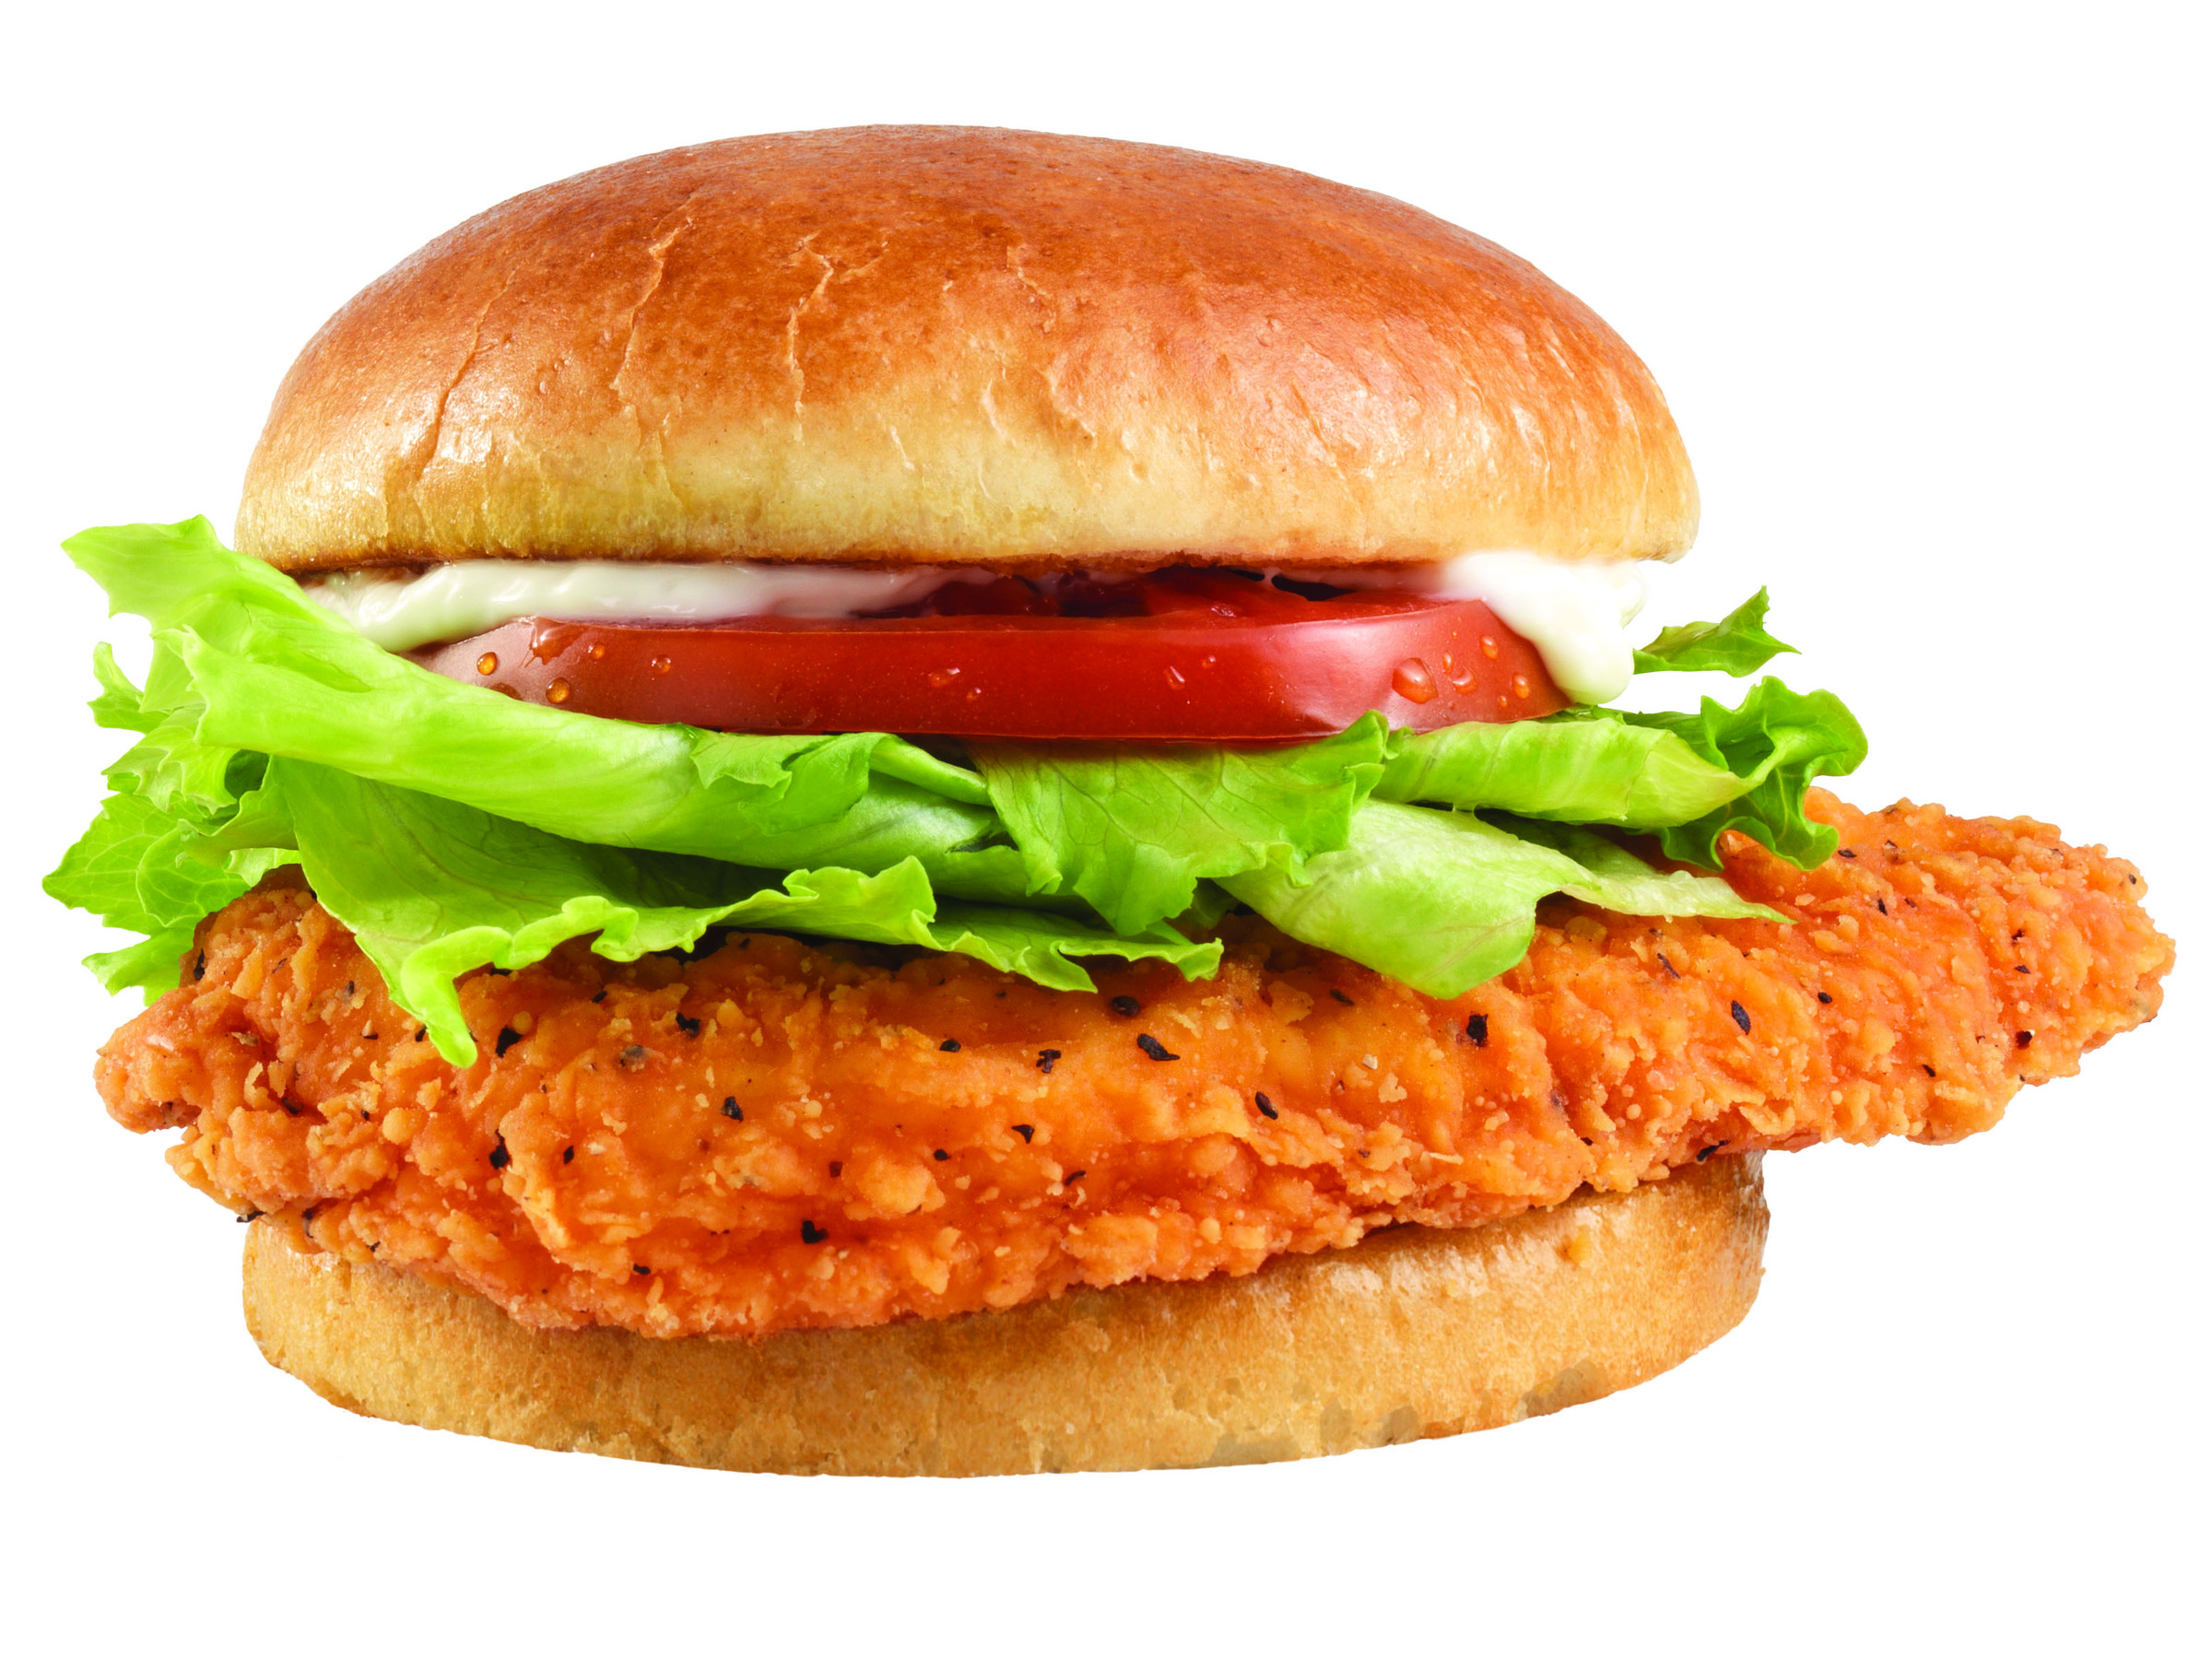 Wendys Chicken Sandwiches  Wendy s is reducing the size of its chickens to improve